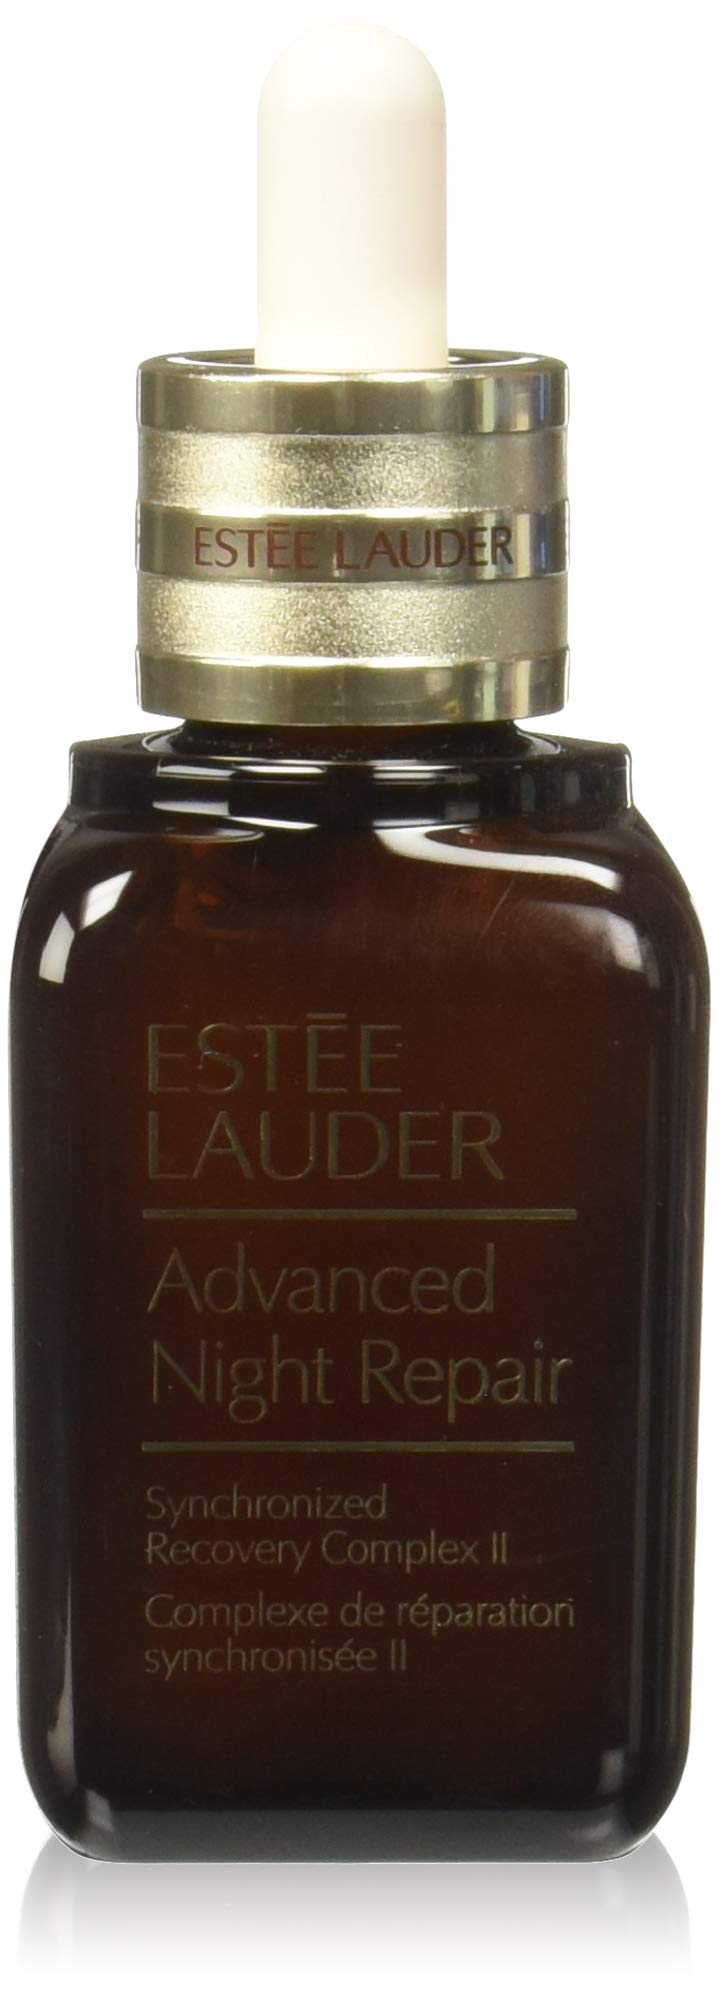 ESTEE LAUDER Advanced Night Repair Recovery Complex Ii, 1.7 Ounce by Estee Lauder